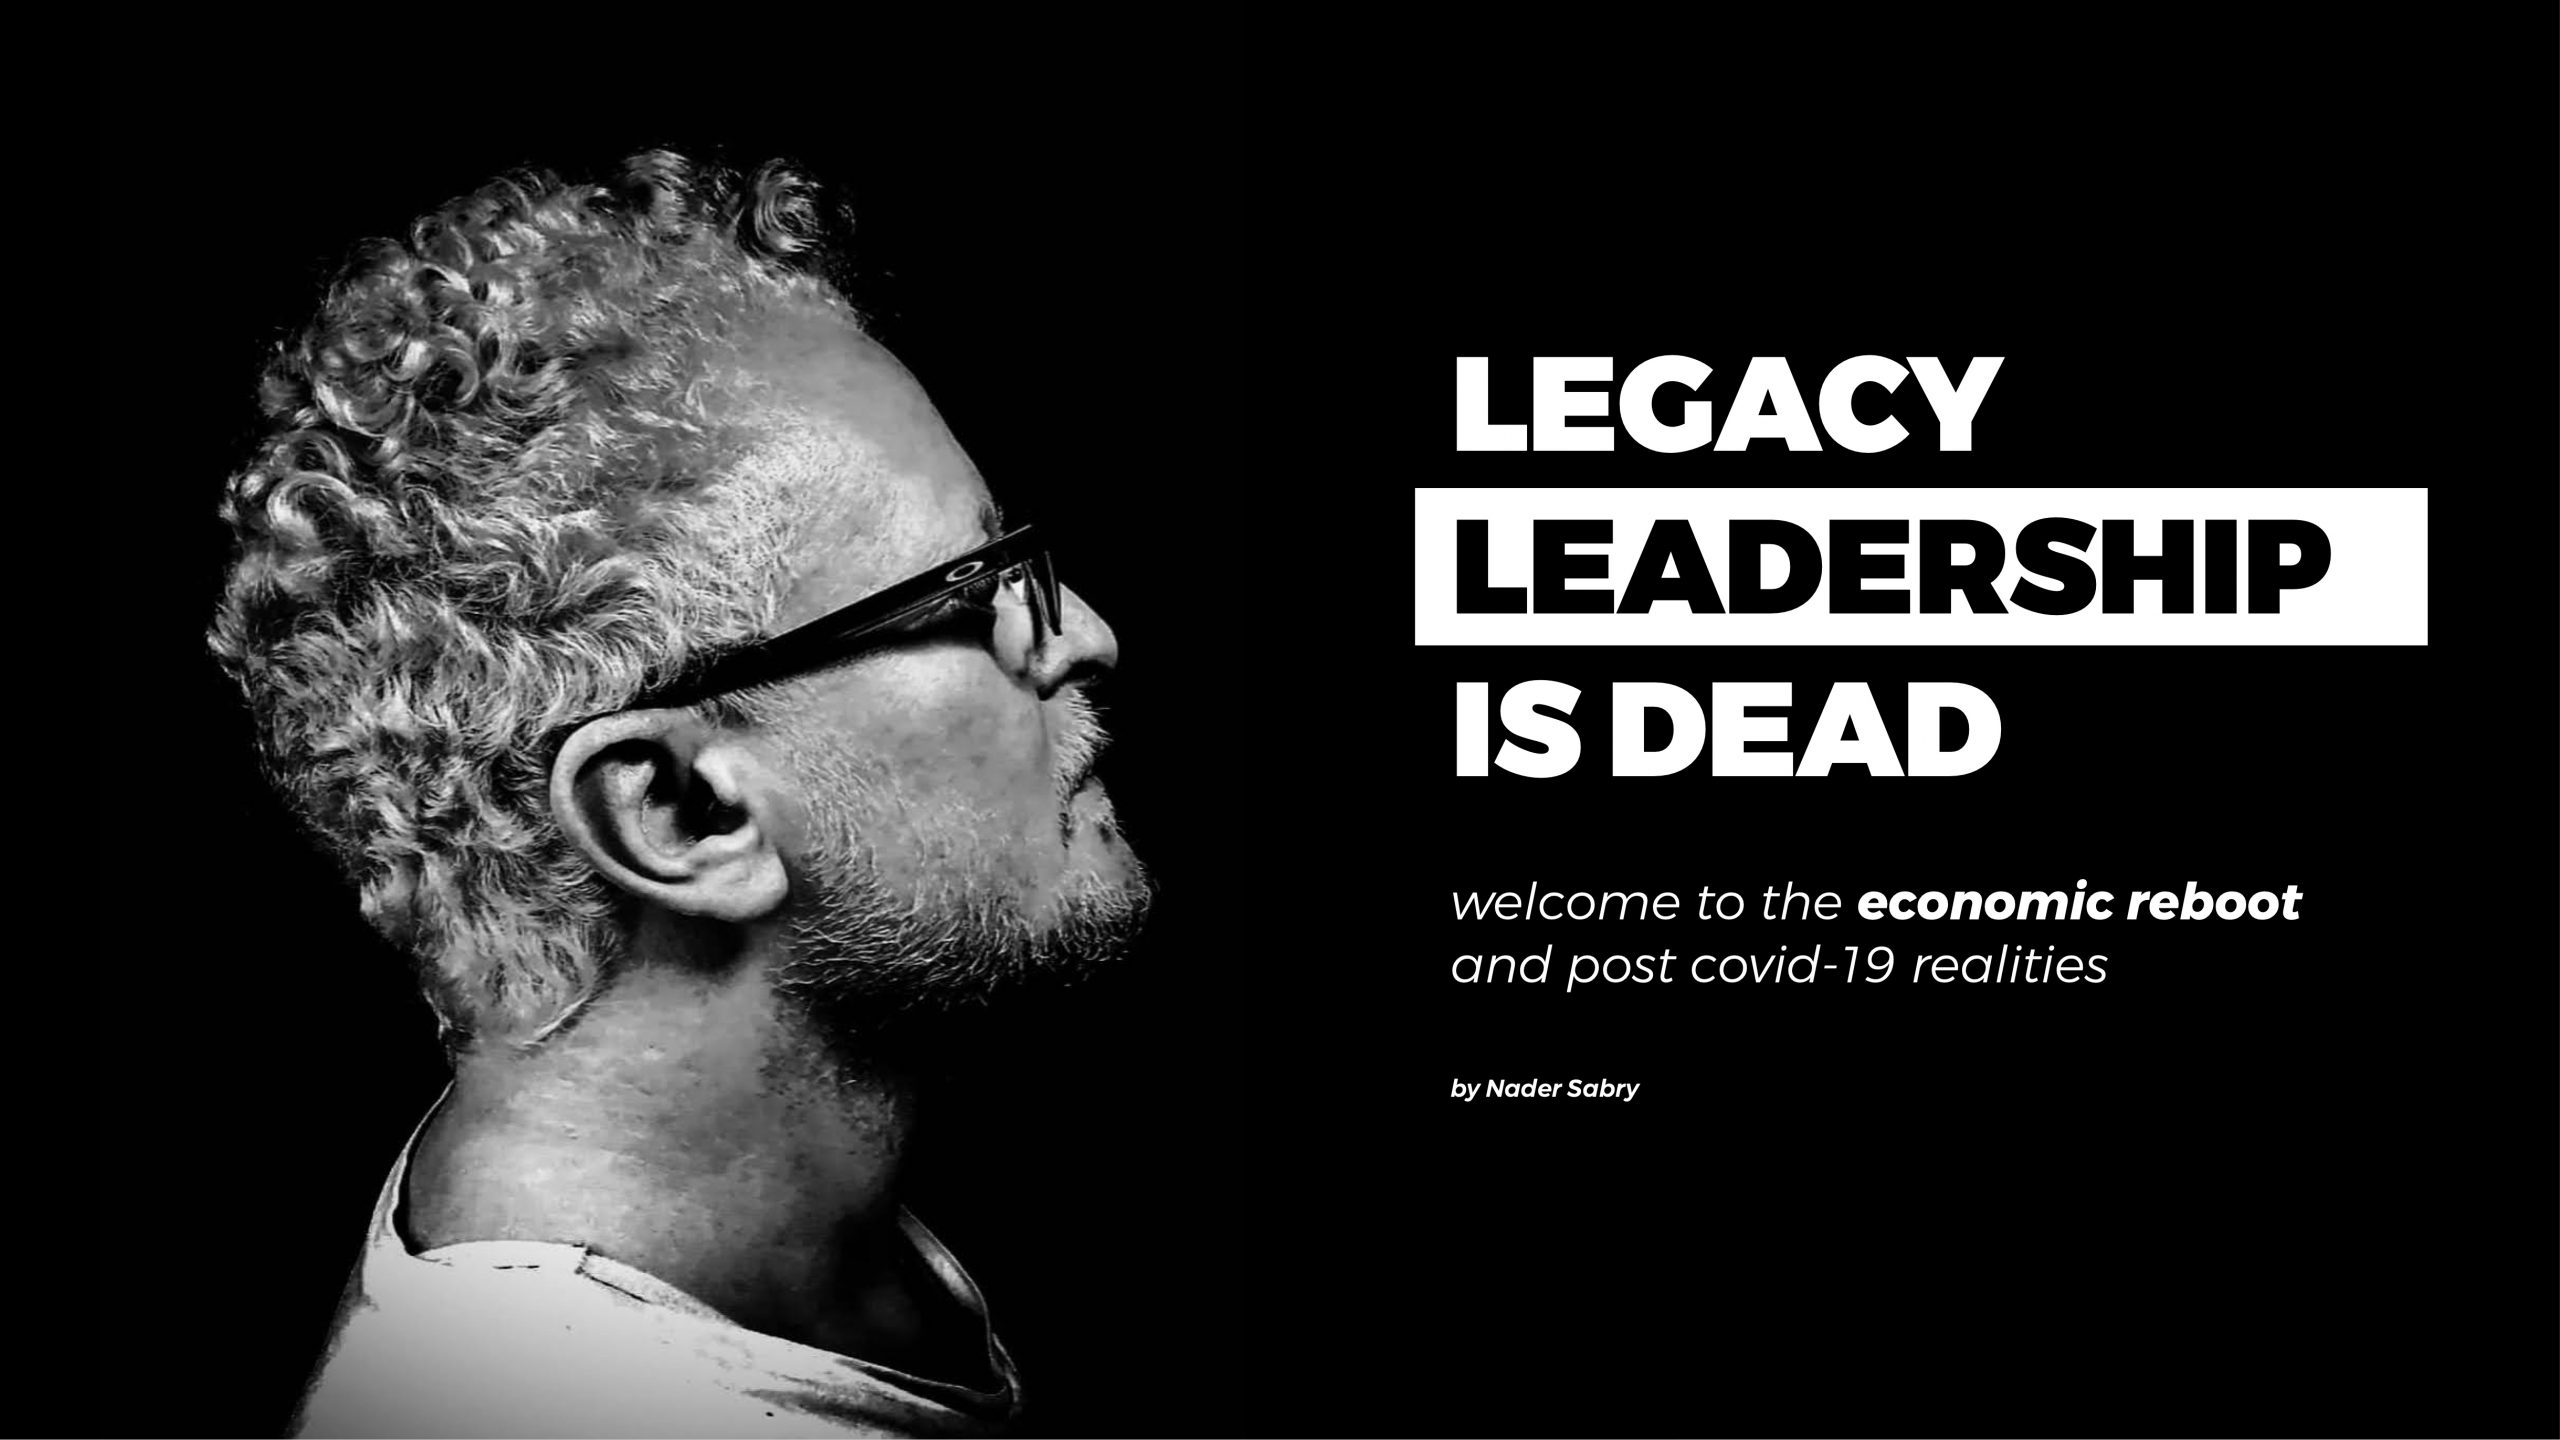 Legacy Leadership is dead